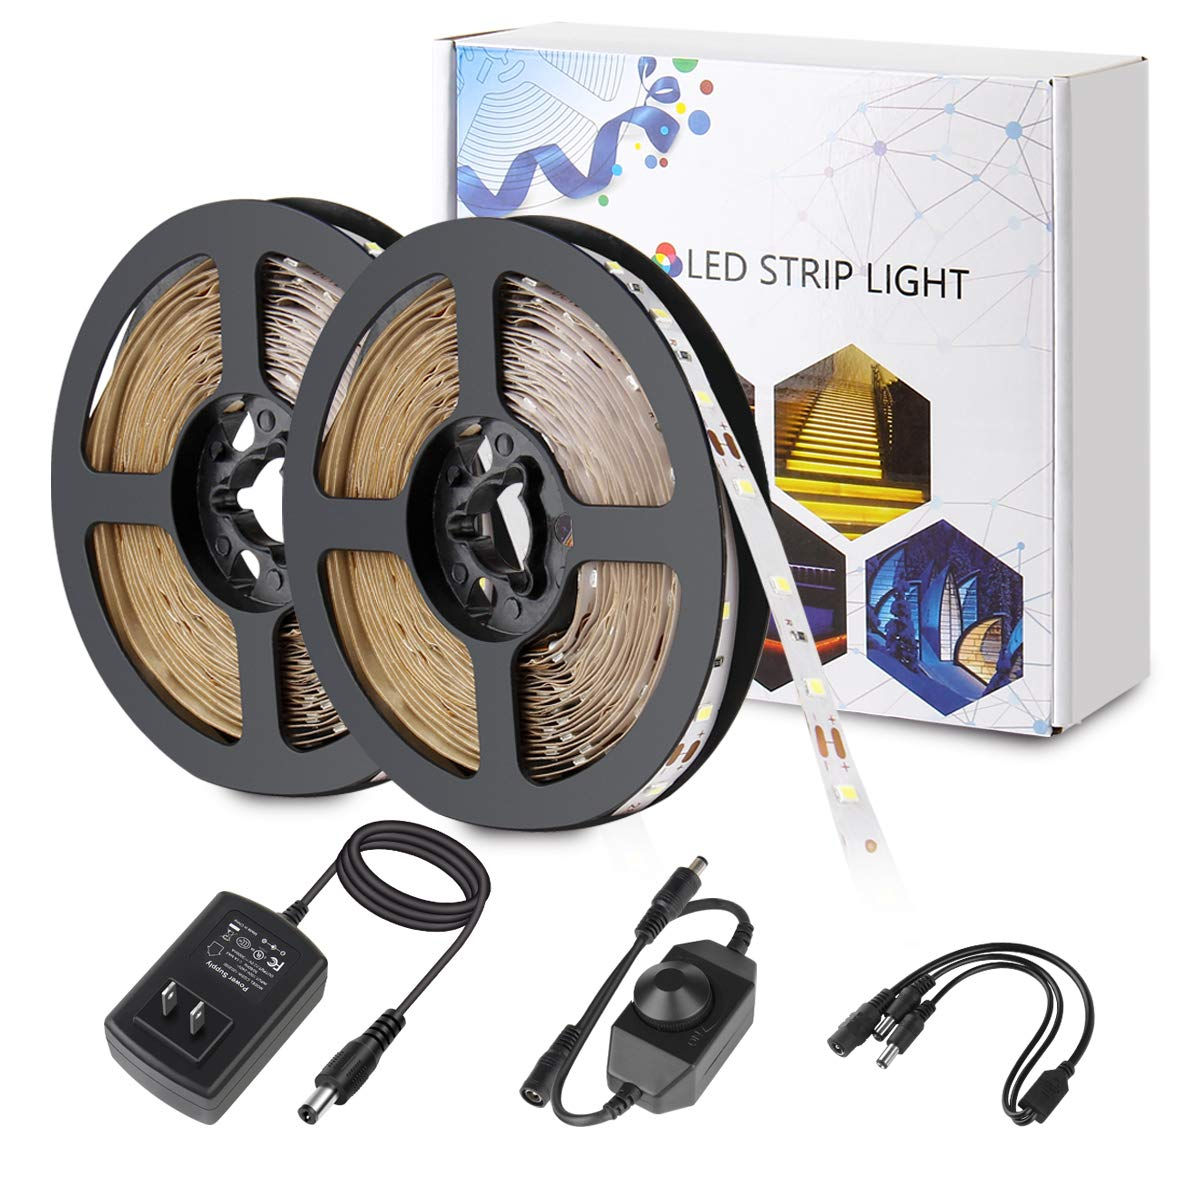 BINZET LED Strip Light - 32.8ft Daylight White Dimmable Flexible SMD2835 600LEDs 6500K Self-Adhesive LED Light Strip Full Set With DC12V 3A UL-Listed Power Supply And Dimmer